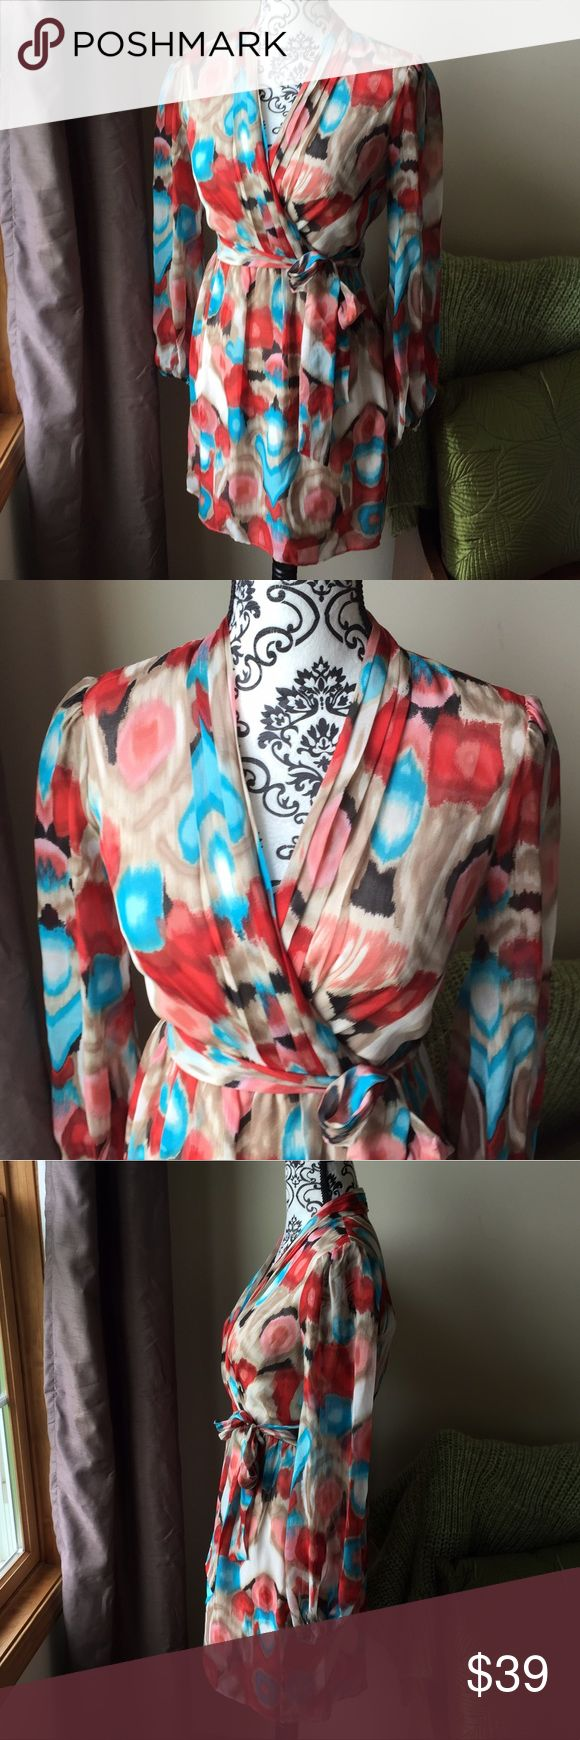 Laundry by Shelli Segal Dress Stunning 100% silk dress by Shelli Segal. Vibrant colors make this a must have dress in your spring wardrobe. Excellent condition!! Laundry by Shelli Segal Dresses